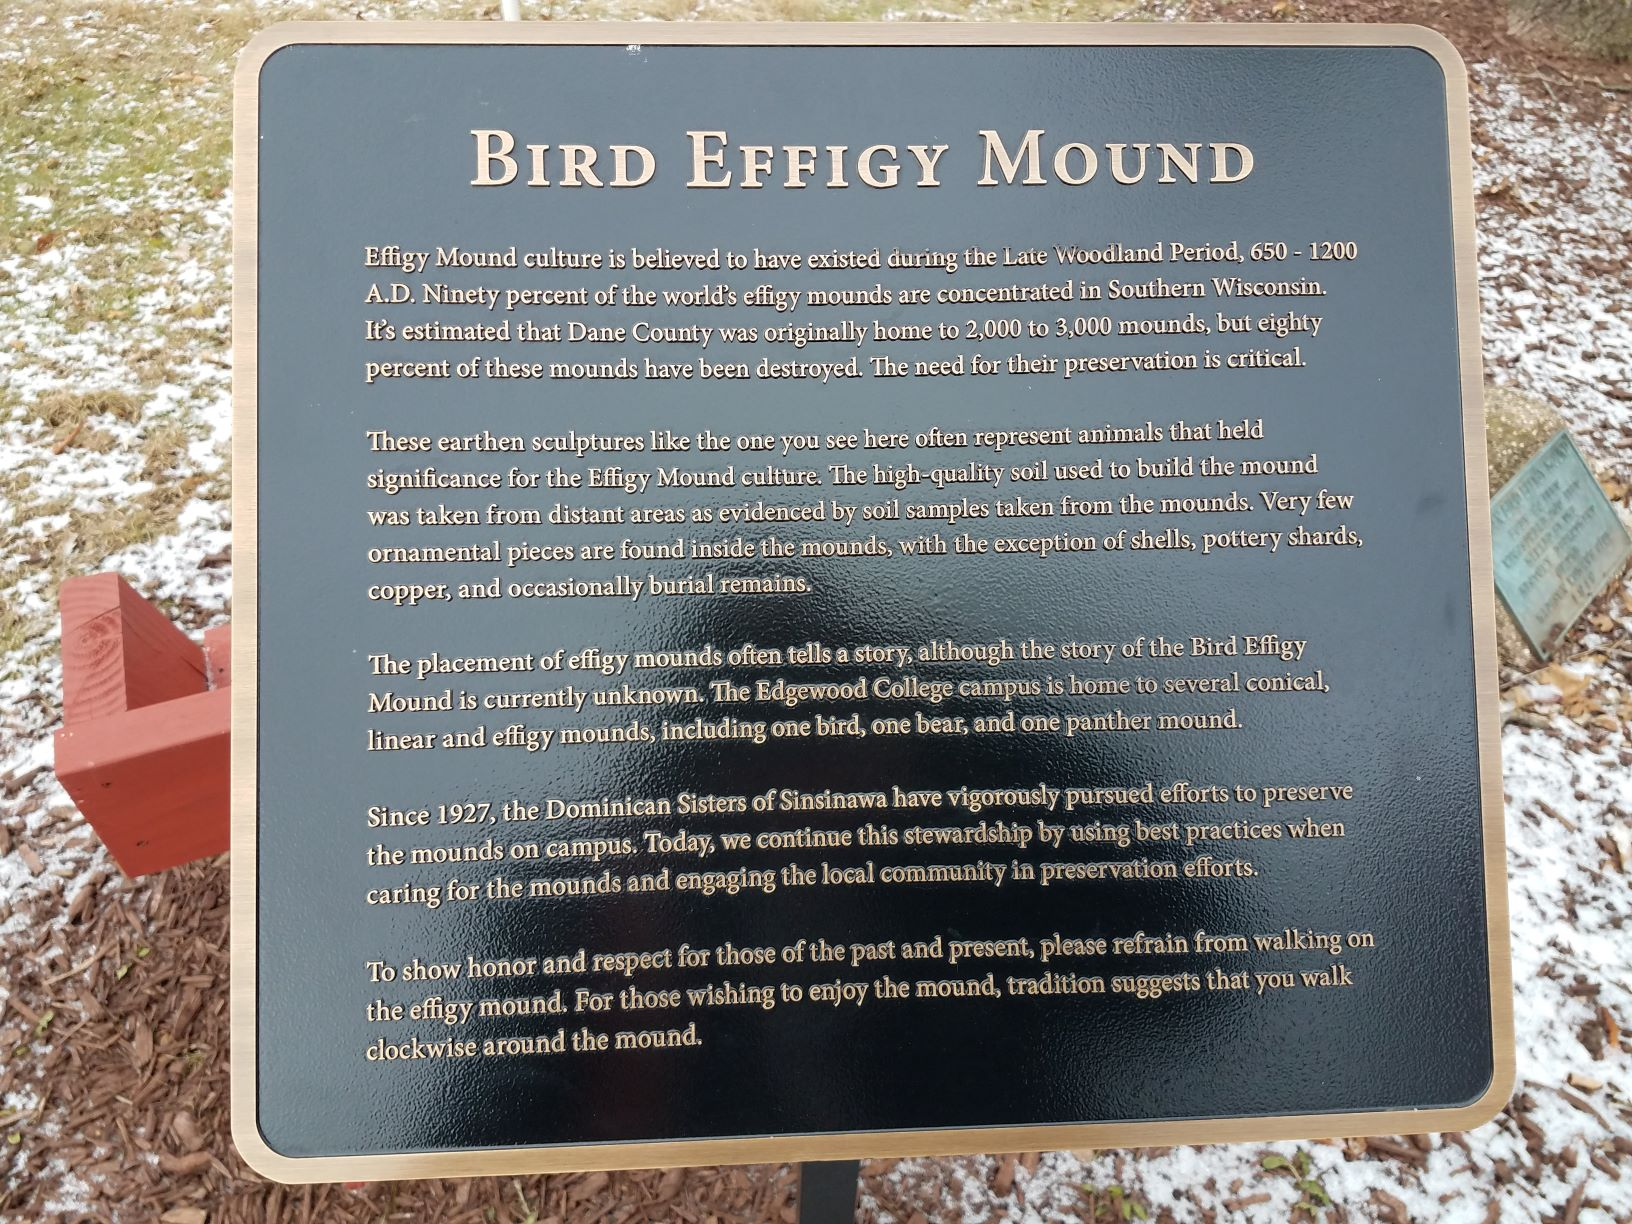 A plaque marking the mound's location and significance. Photo by Bonita Dickman.